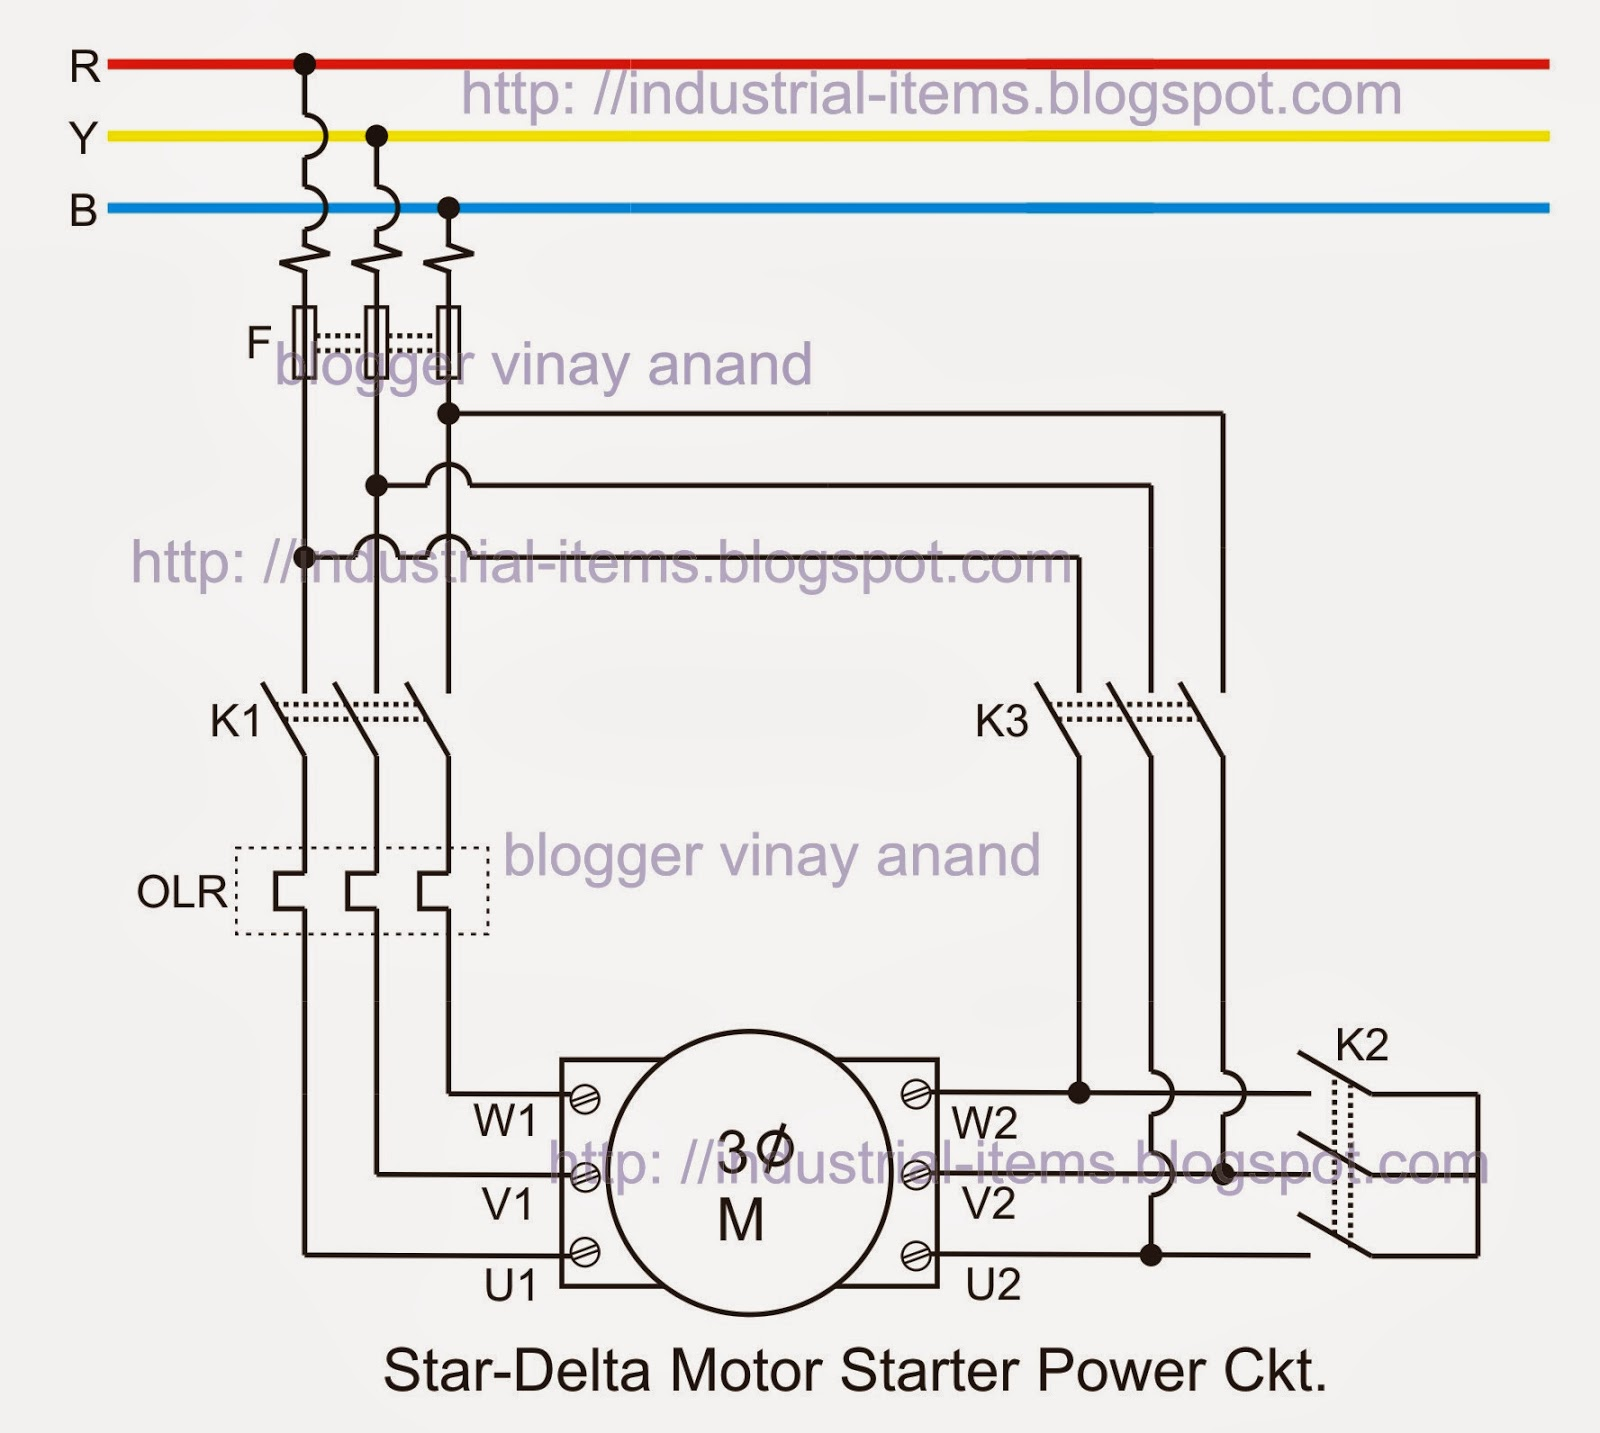 star delta starter power circuit of 3 phase induction motor [ 1600 x 1433 Pixel ]